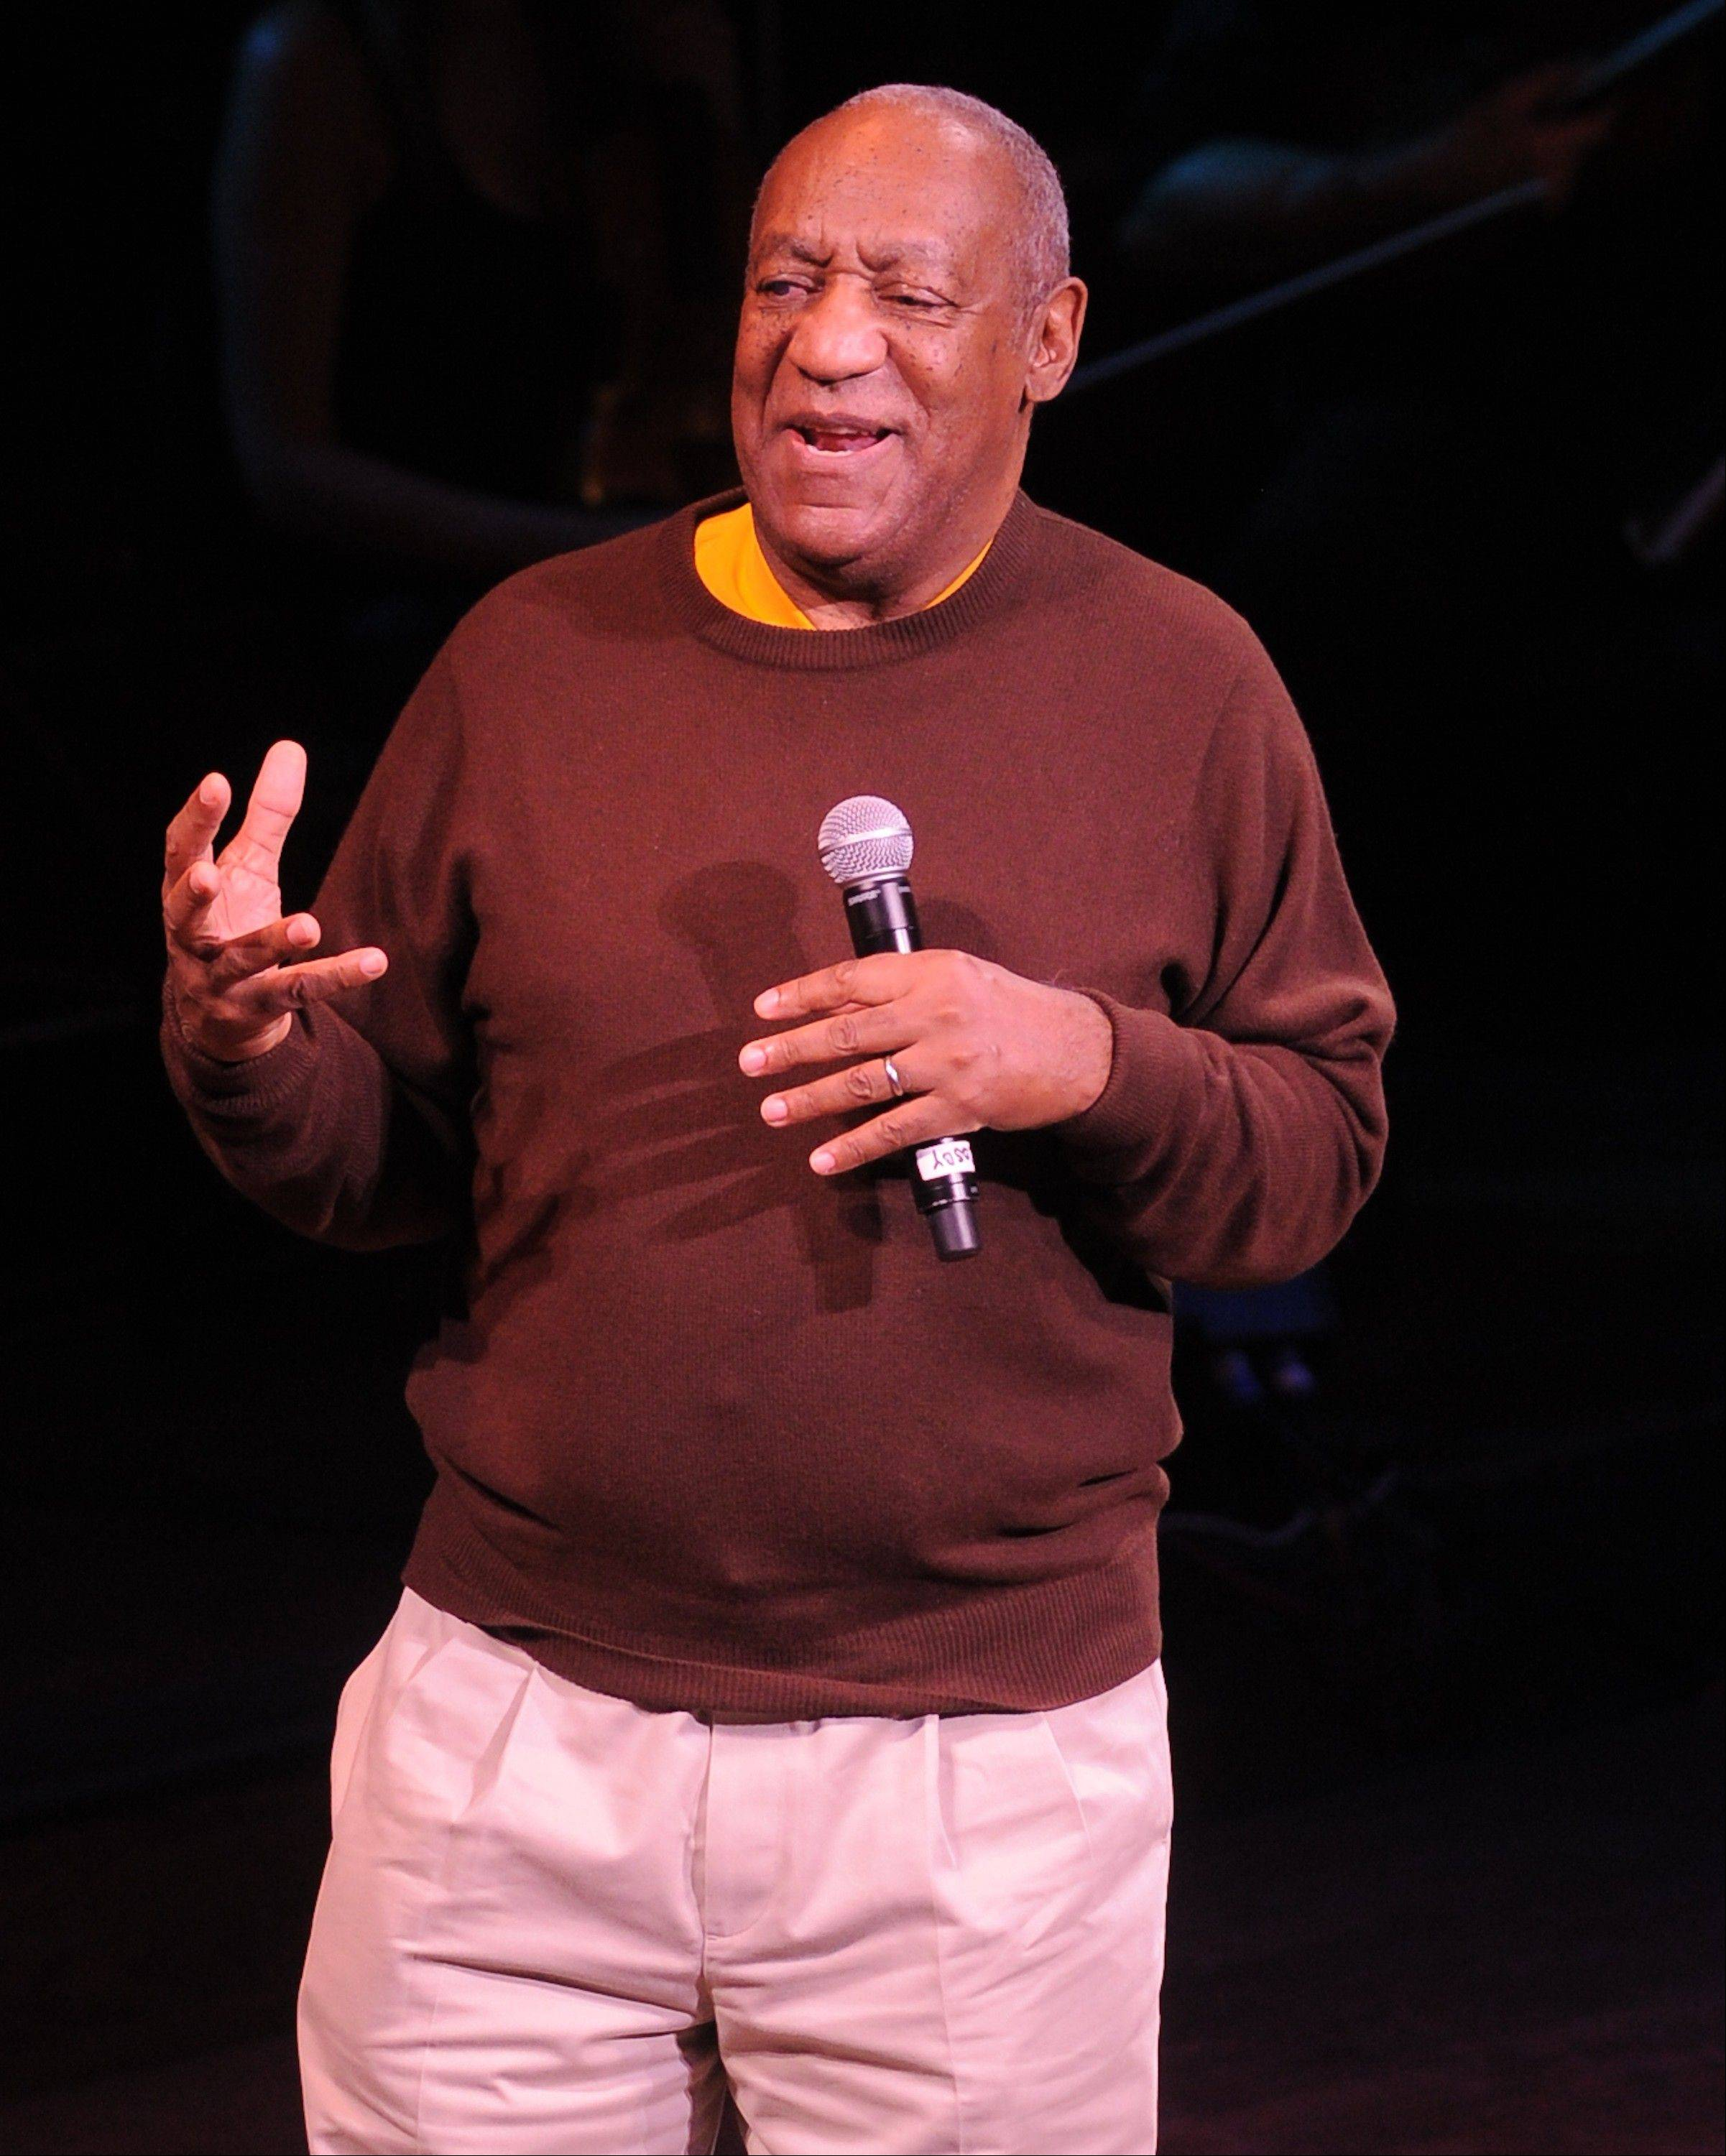 Comedian Bill Cosby appears at the Genesee Theatre on Saturday, Dec. 1.